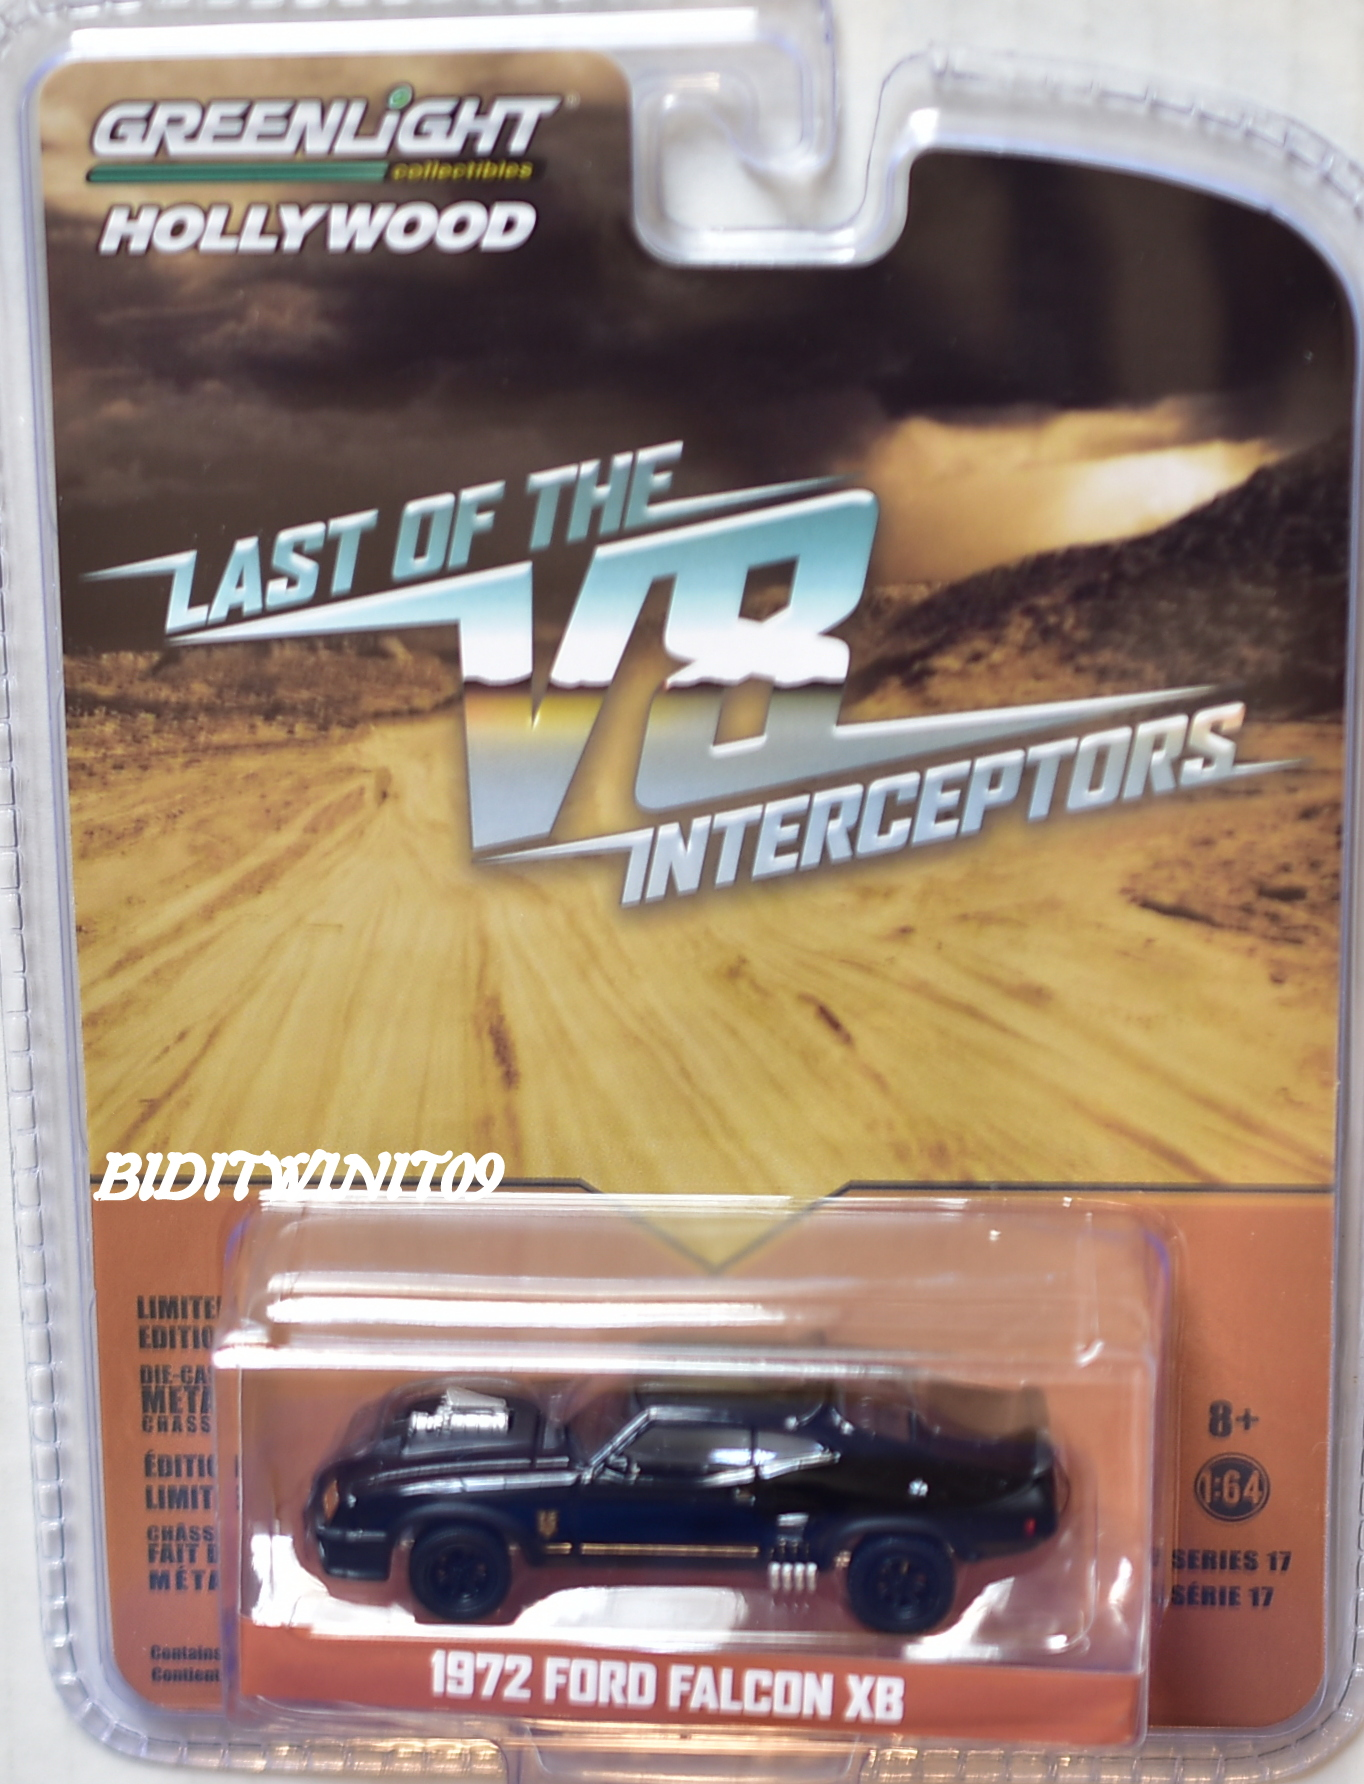 GREENLIGHT HOLLYWOOD LAST OF THE V8 INTERCEPTORS 1972 FORD FALCON XB